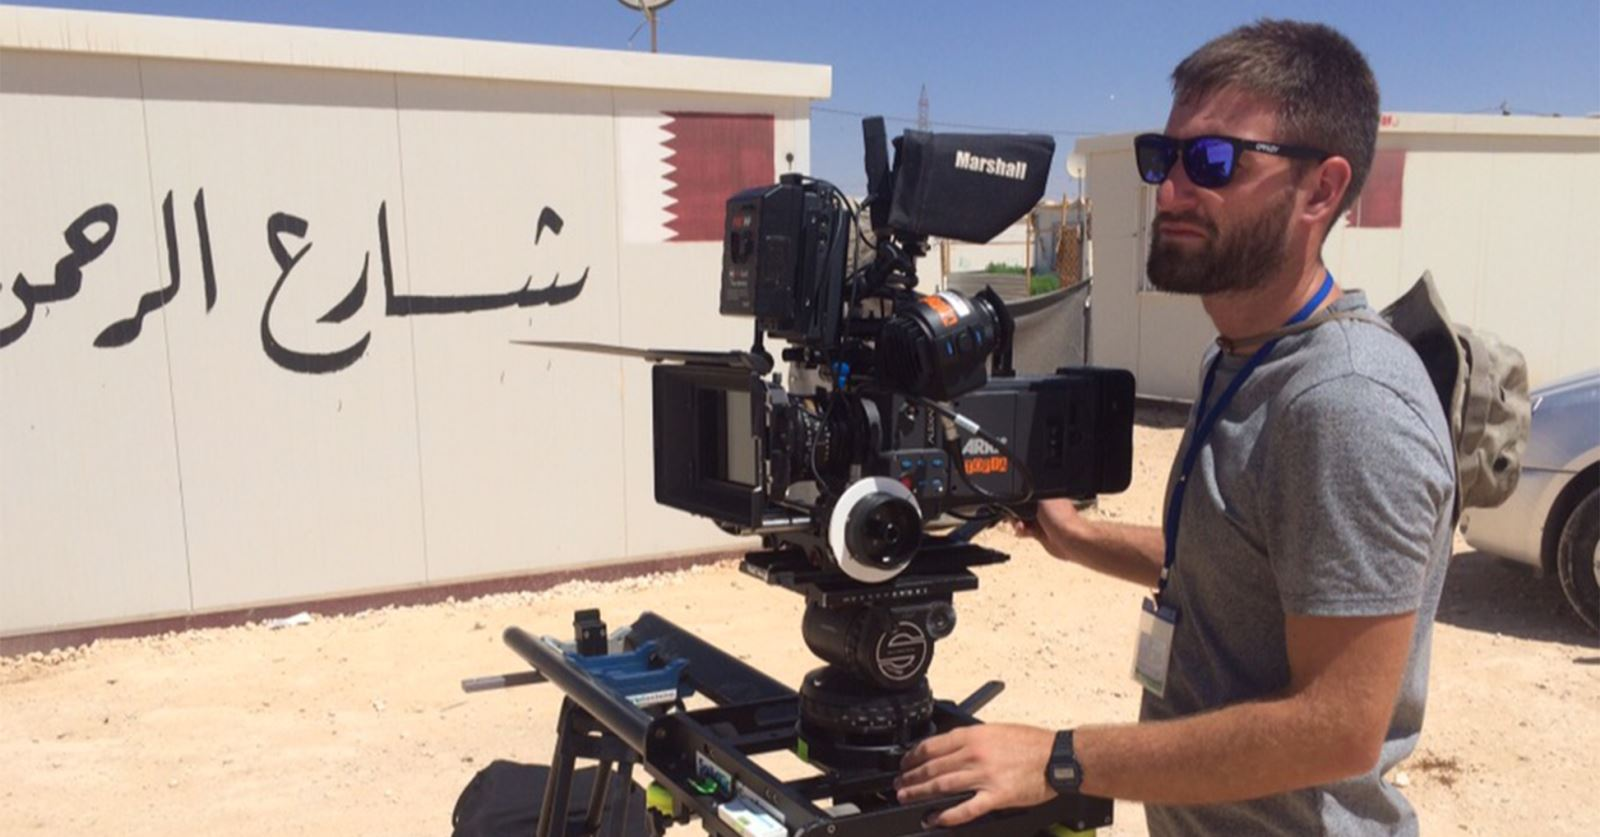 Welcome to new GTC member Ross Pimlott – filming at Zataari refugee camp on the Jordan/Syria border with ARRI Alexa